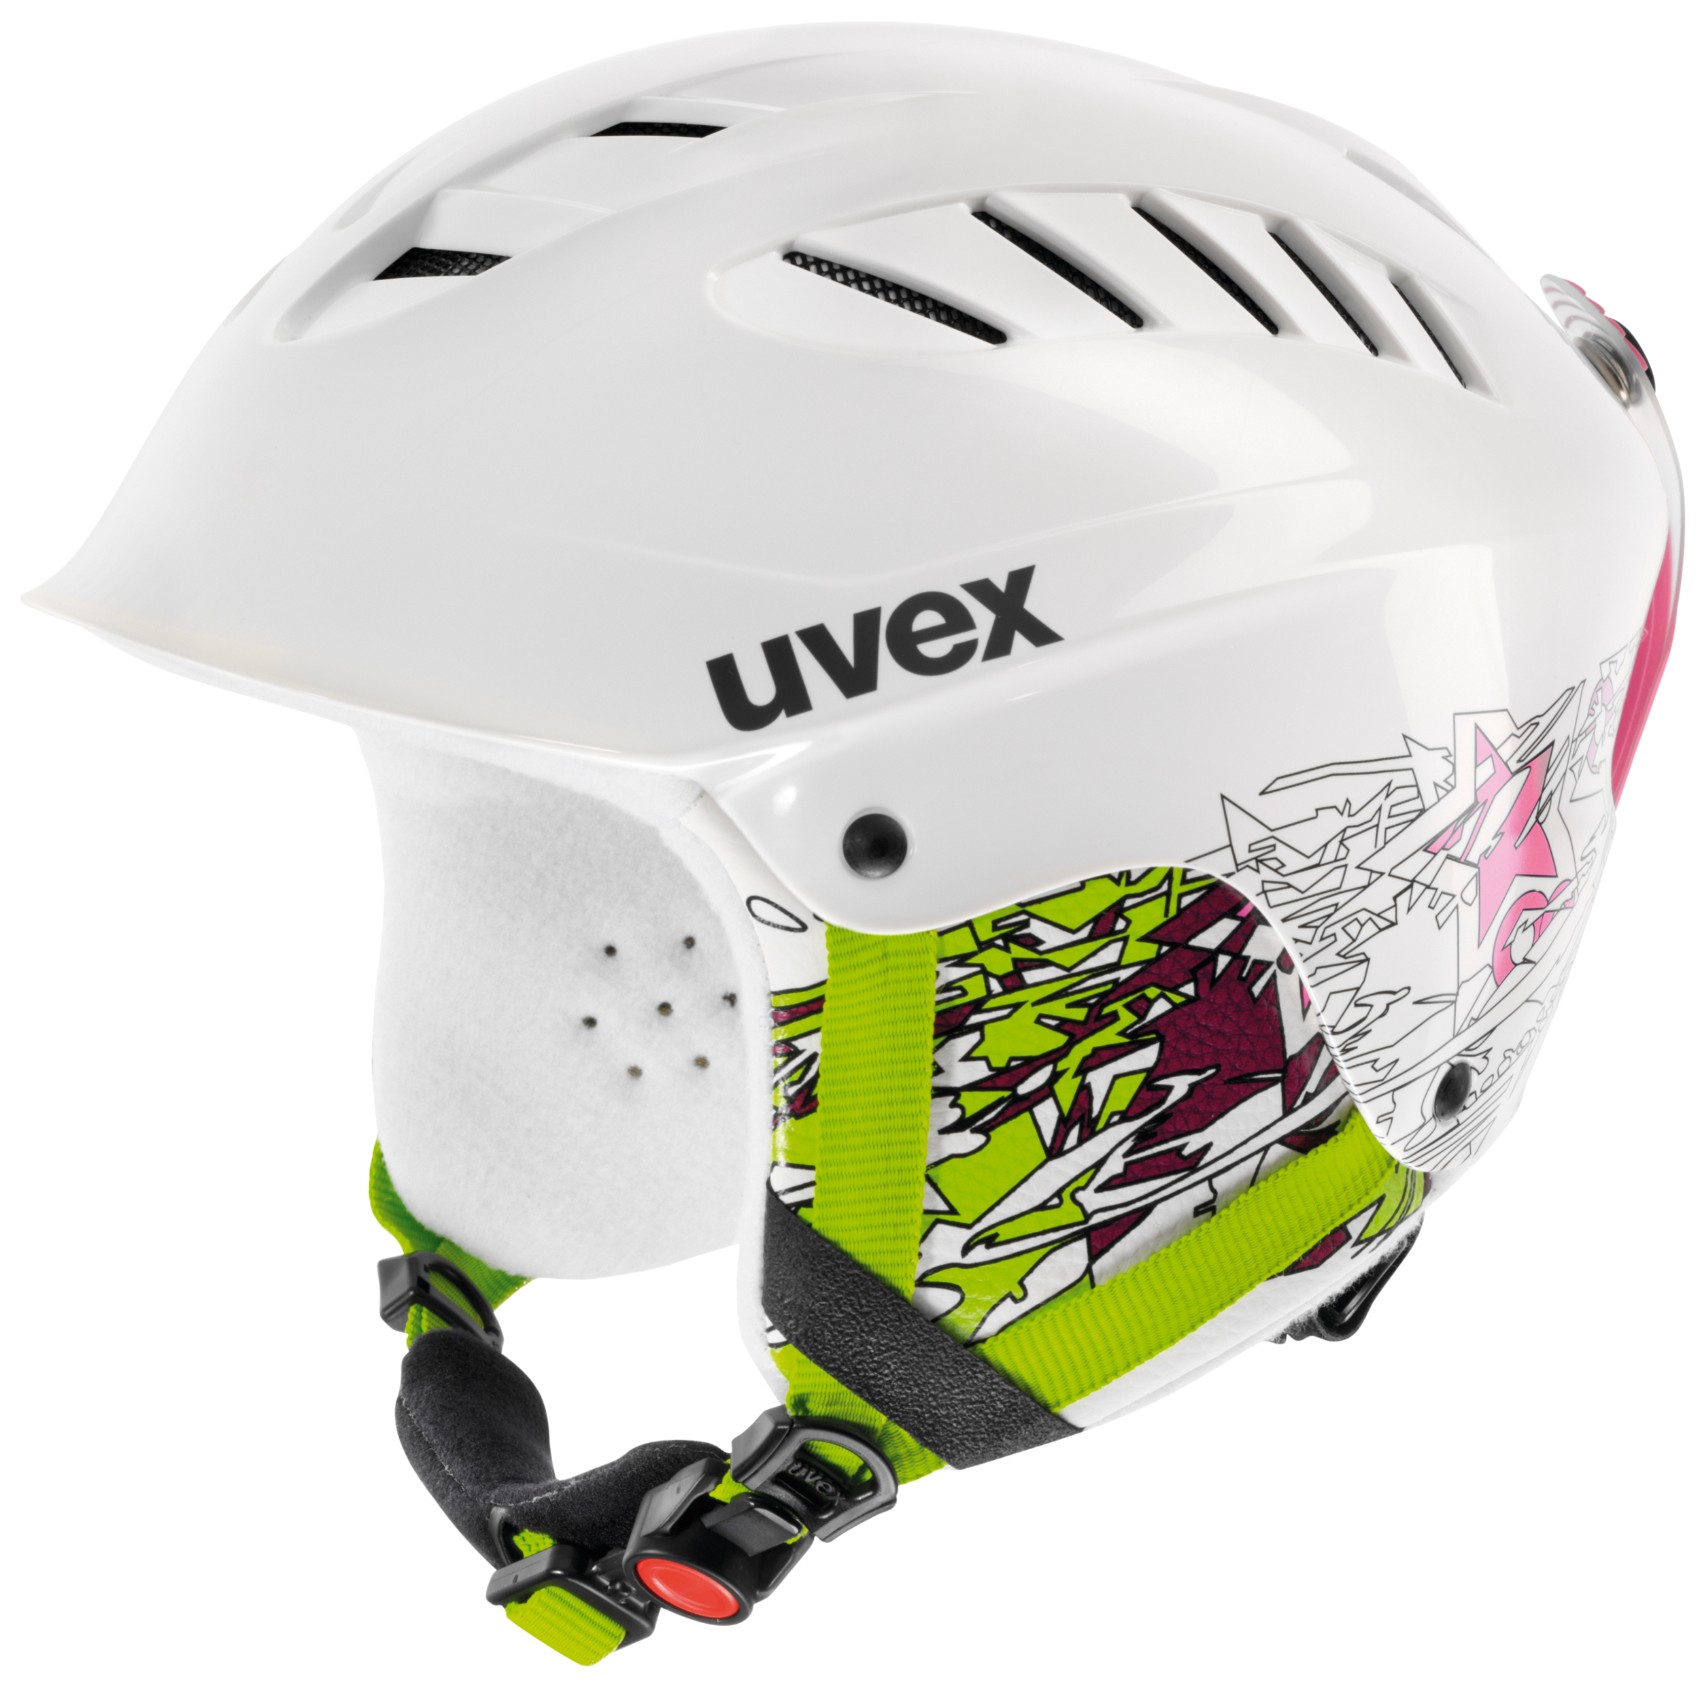 Uvex X-ride Junior Motion-0